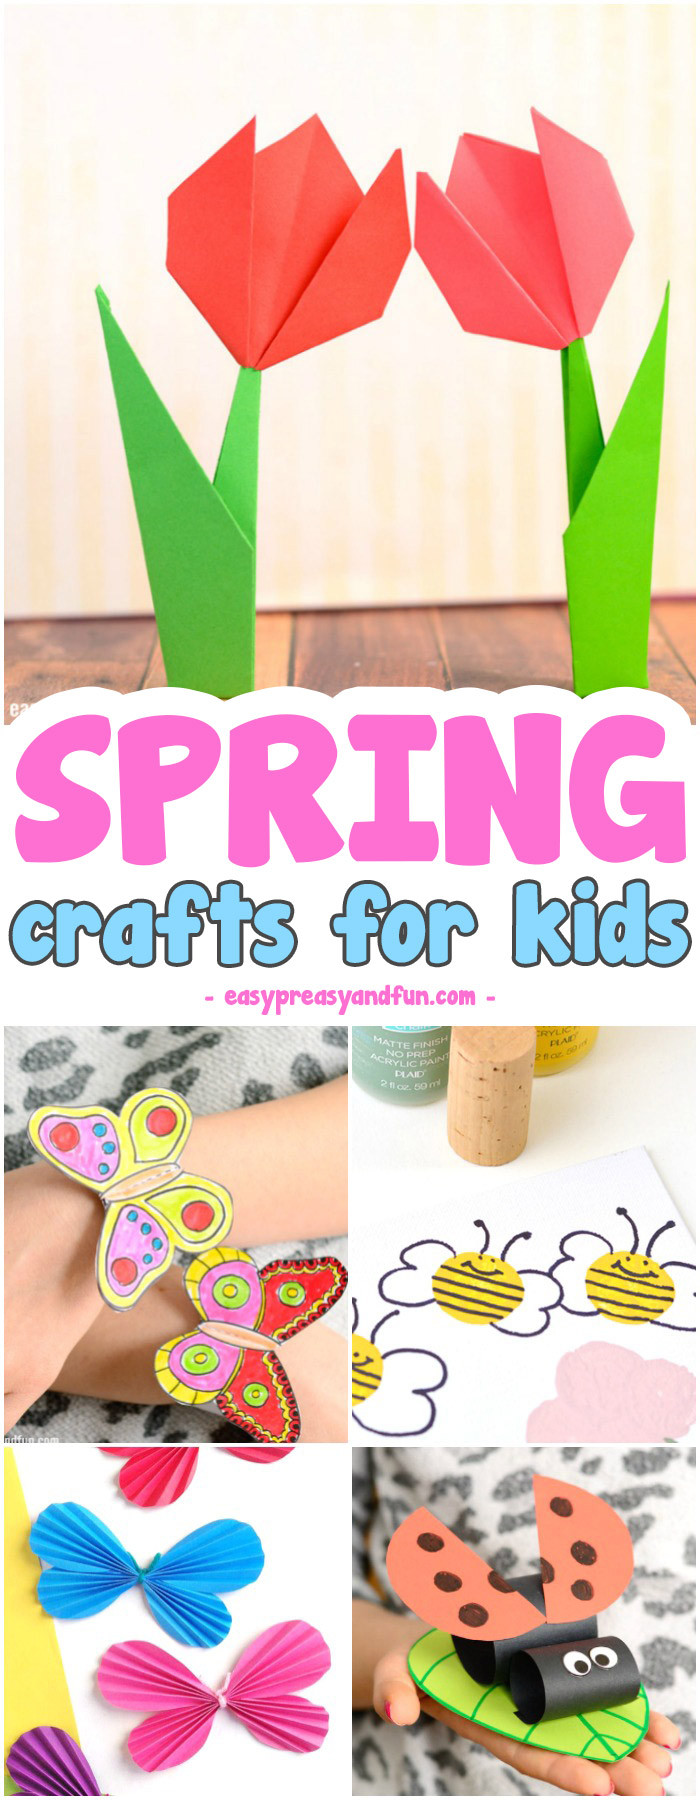 Best ideas about Arts & Crafts For Kids . Save or Pin Spring Crafts for Kids Art and Craft Project Ideas for Now.